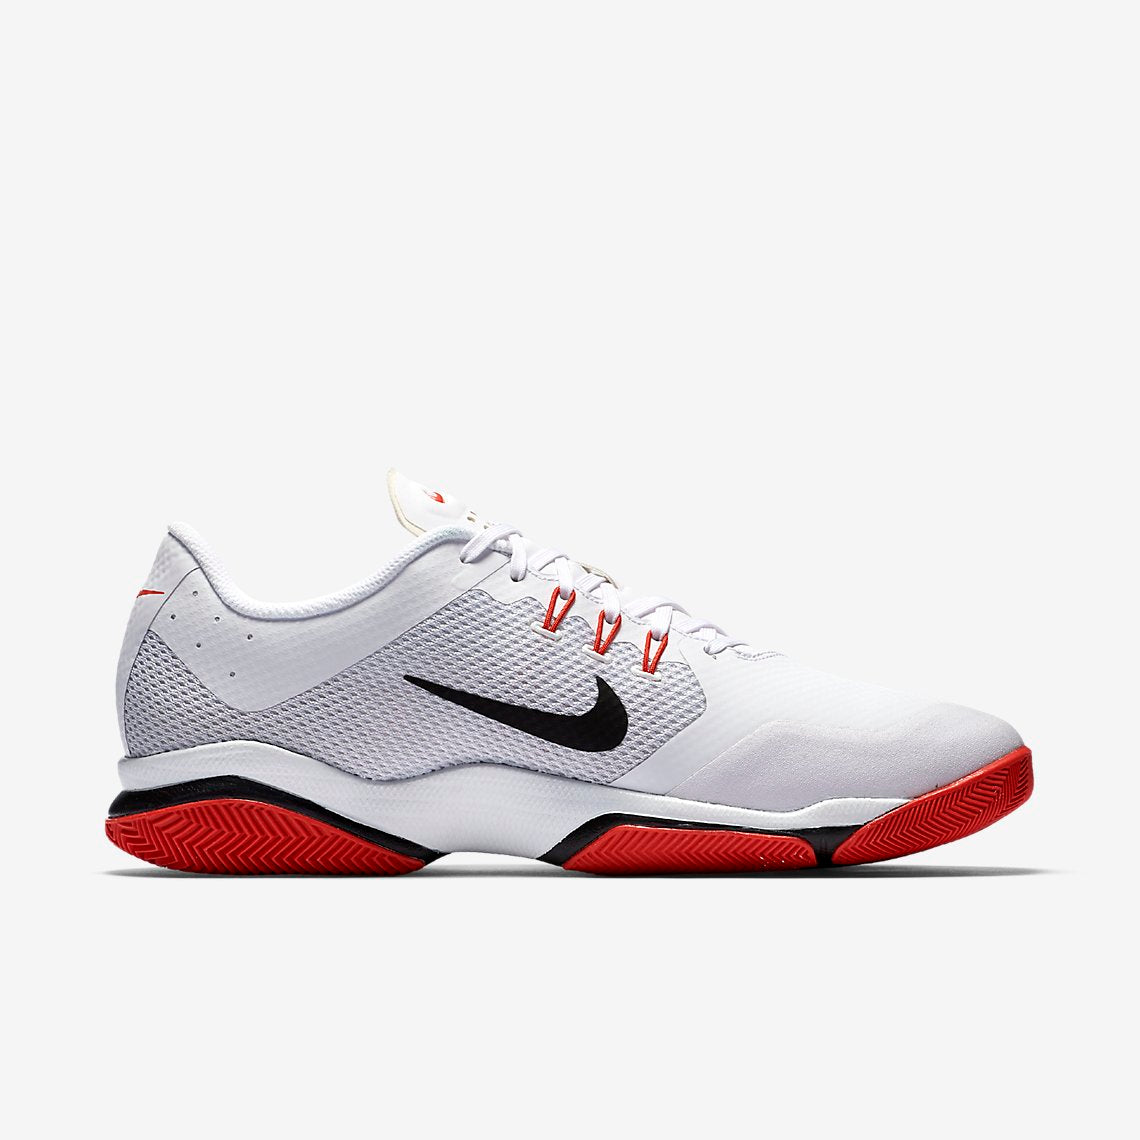 detailed look 37ca5 f23d4 Nike Air Zoom Ultra Men s Tennis Shoe (White Black Orange)